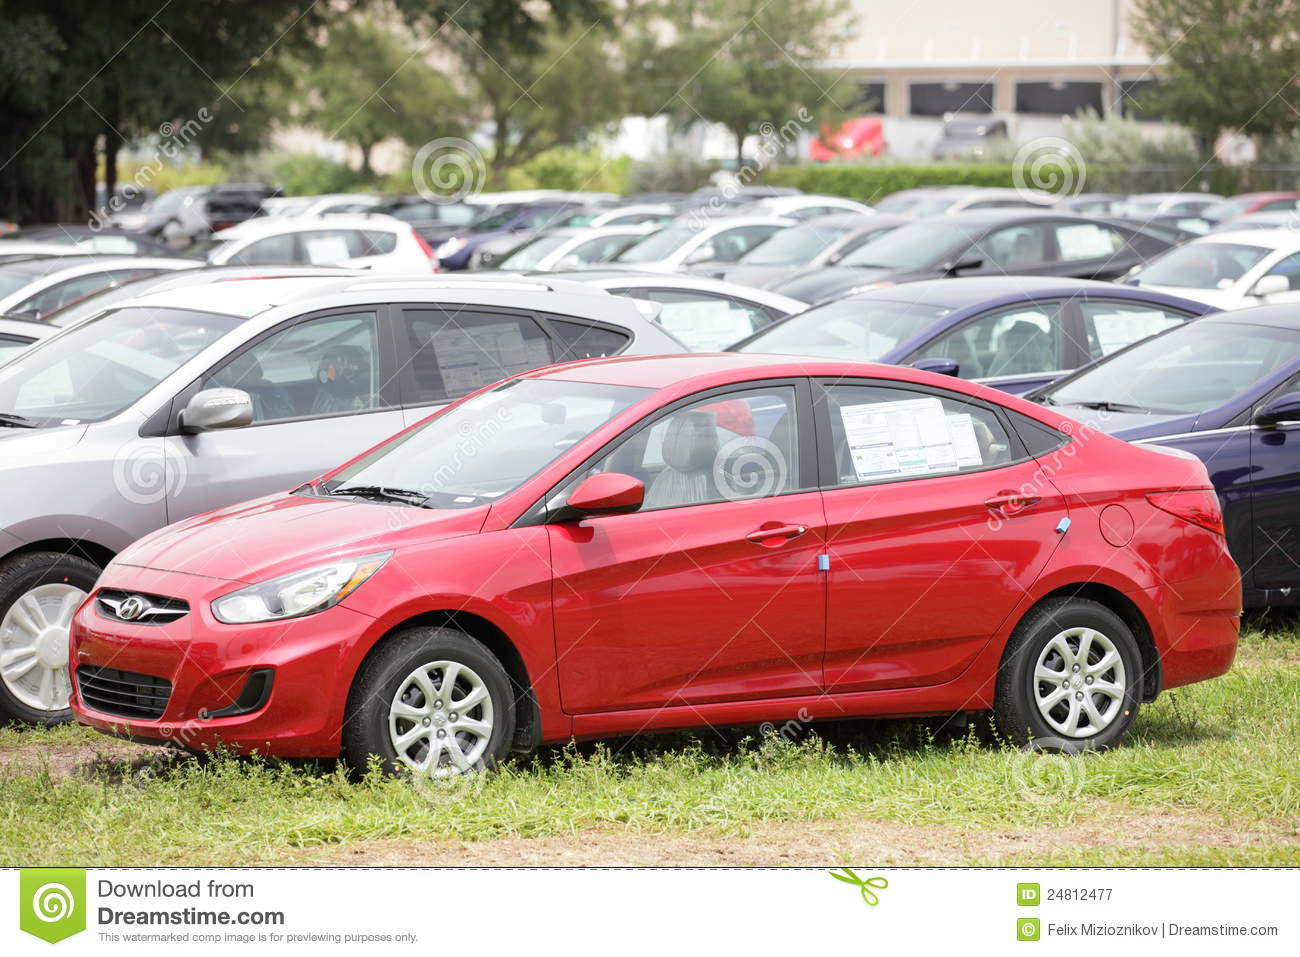 Hyundai Accent 15 Mpg >> 2012 Hyundai Accent Editorial Photography Image Of Sale